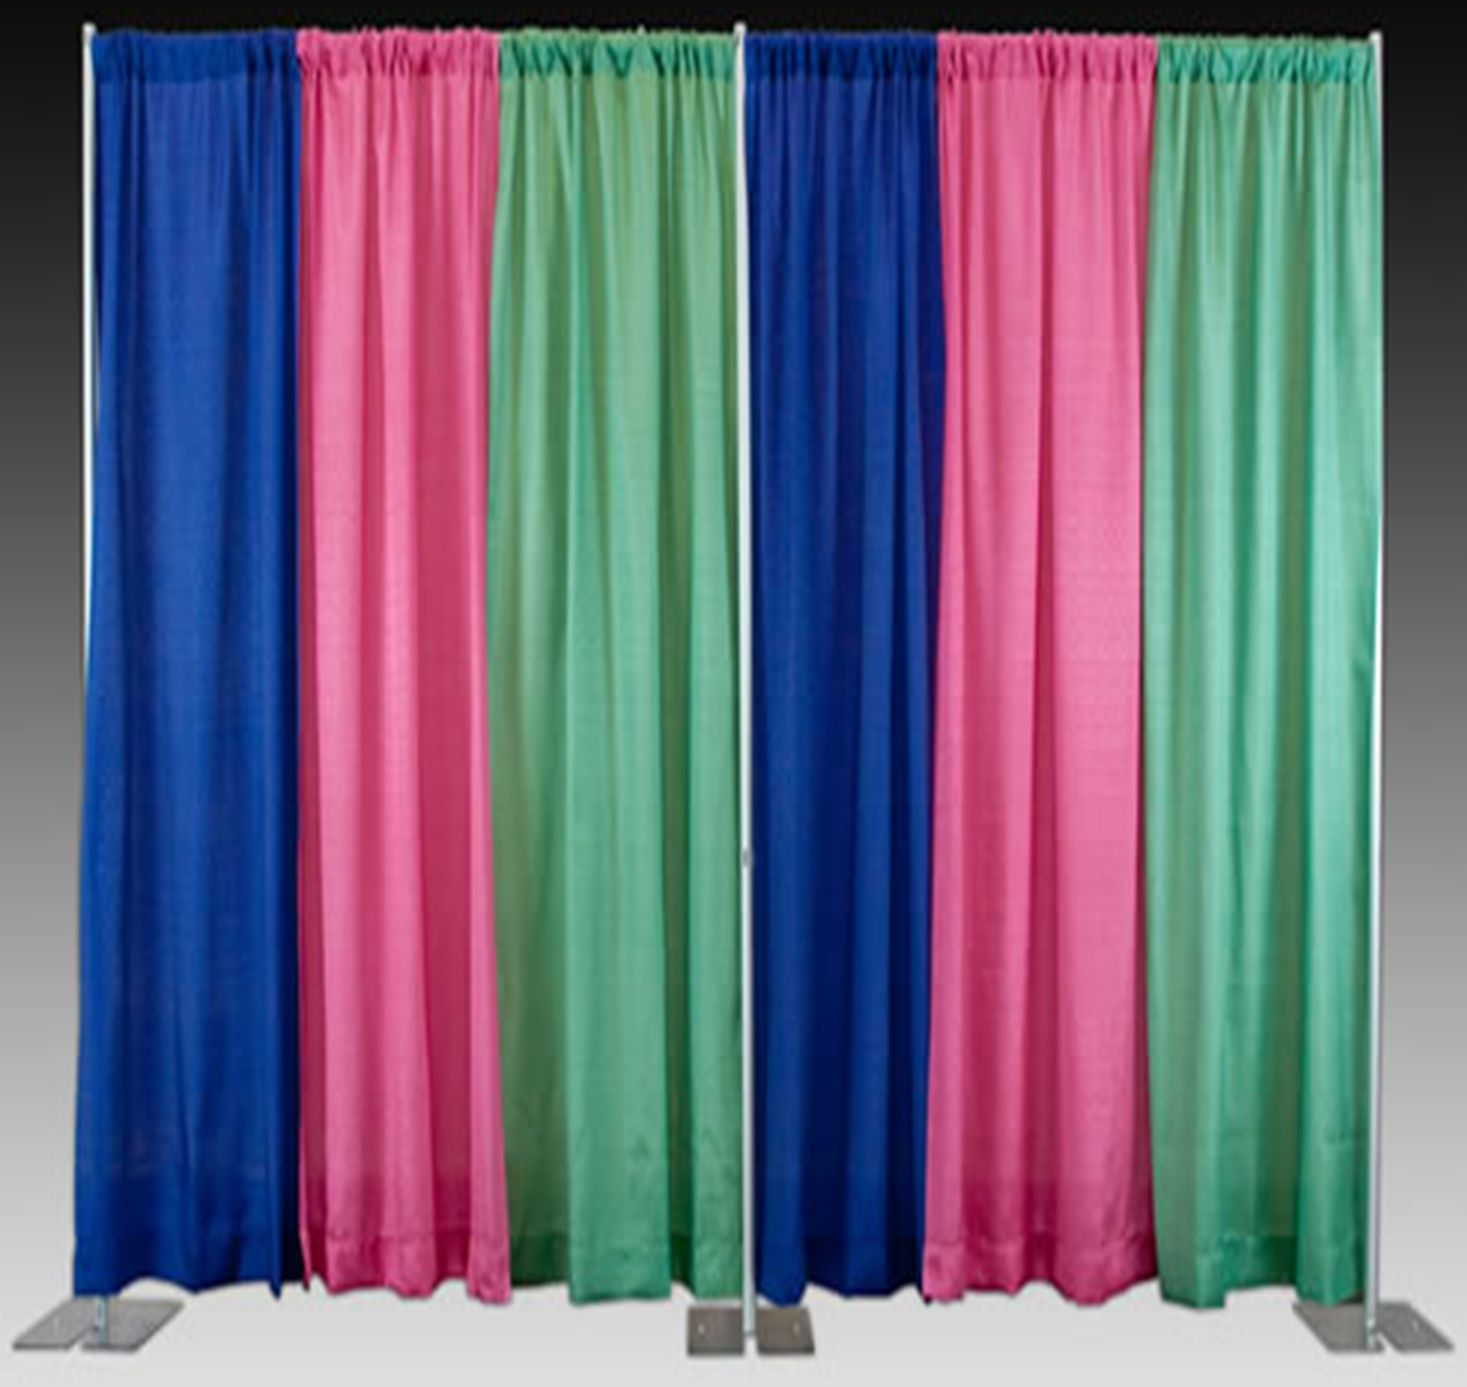 drapes in three colors